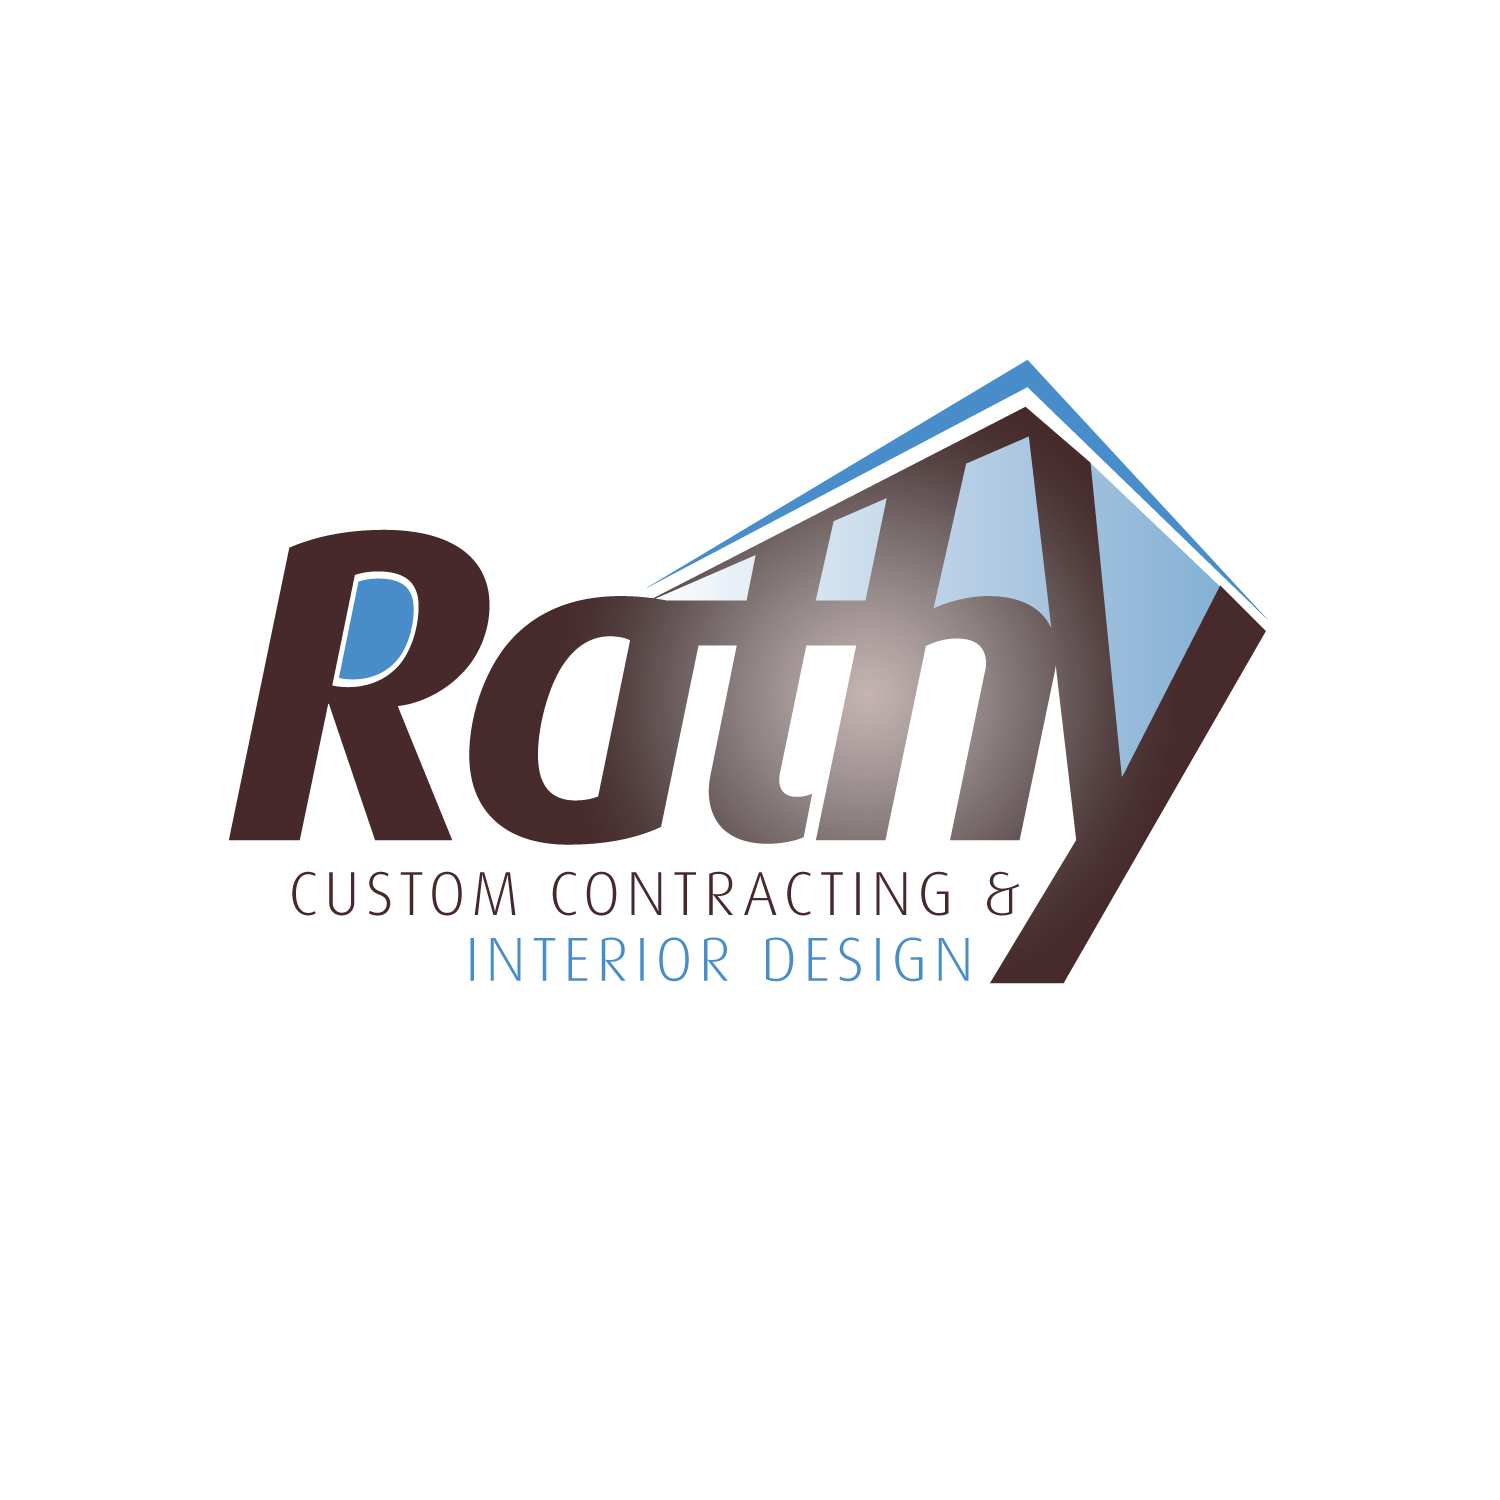 Logo Design by CaptainBope - Entry No. 50 in the Logo Design Contest Logo Design Needed for Exciting New Company Rathy Custom Contracting & Interior Design.